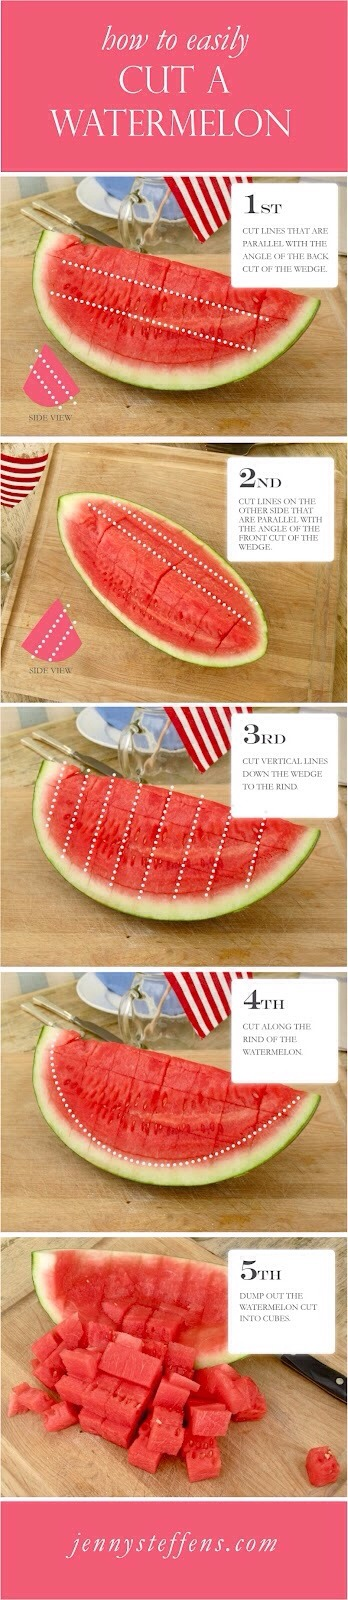 11. How to Perfectly Cut a Watermelon Step1: cut lines that are parallel with the angle of the back cut of wedge. Step 2: cut lines on the other side that are parallel to the angle of the front cut Step 3: cut vertical lines down the wedges Step 4: cut along the rind Step 5: dump out the cubes